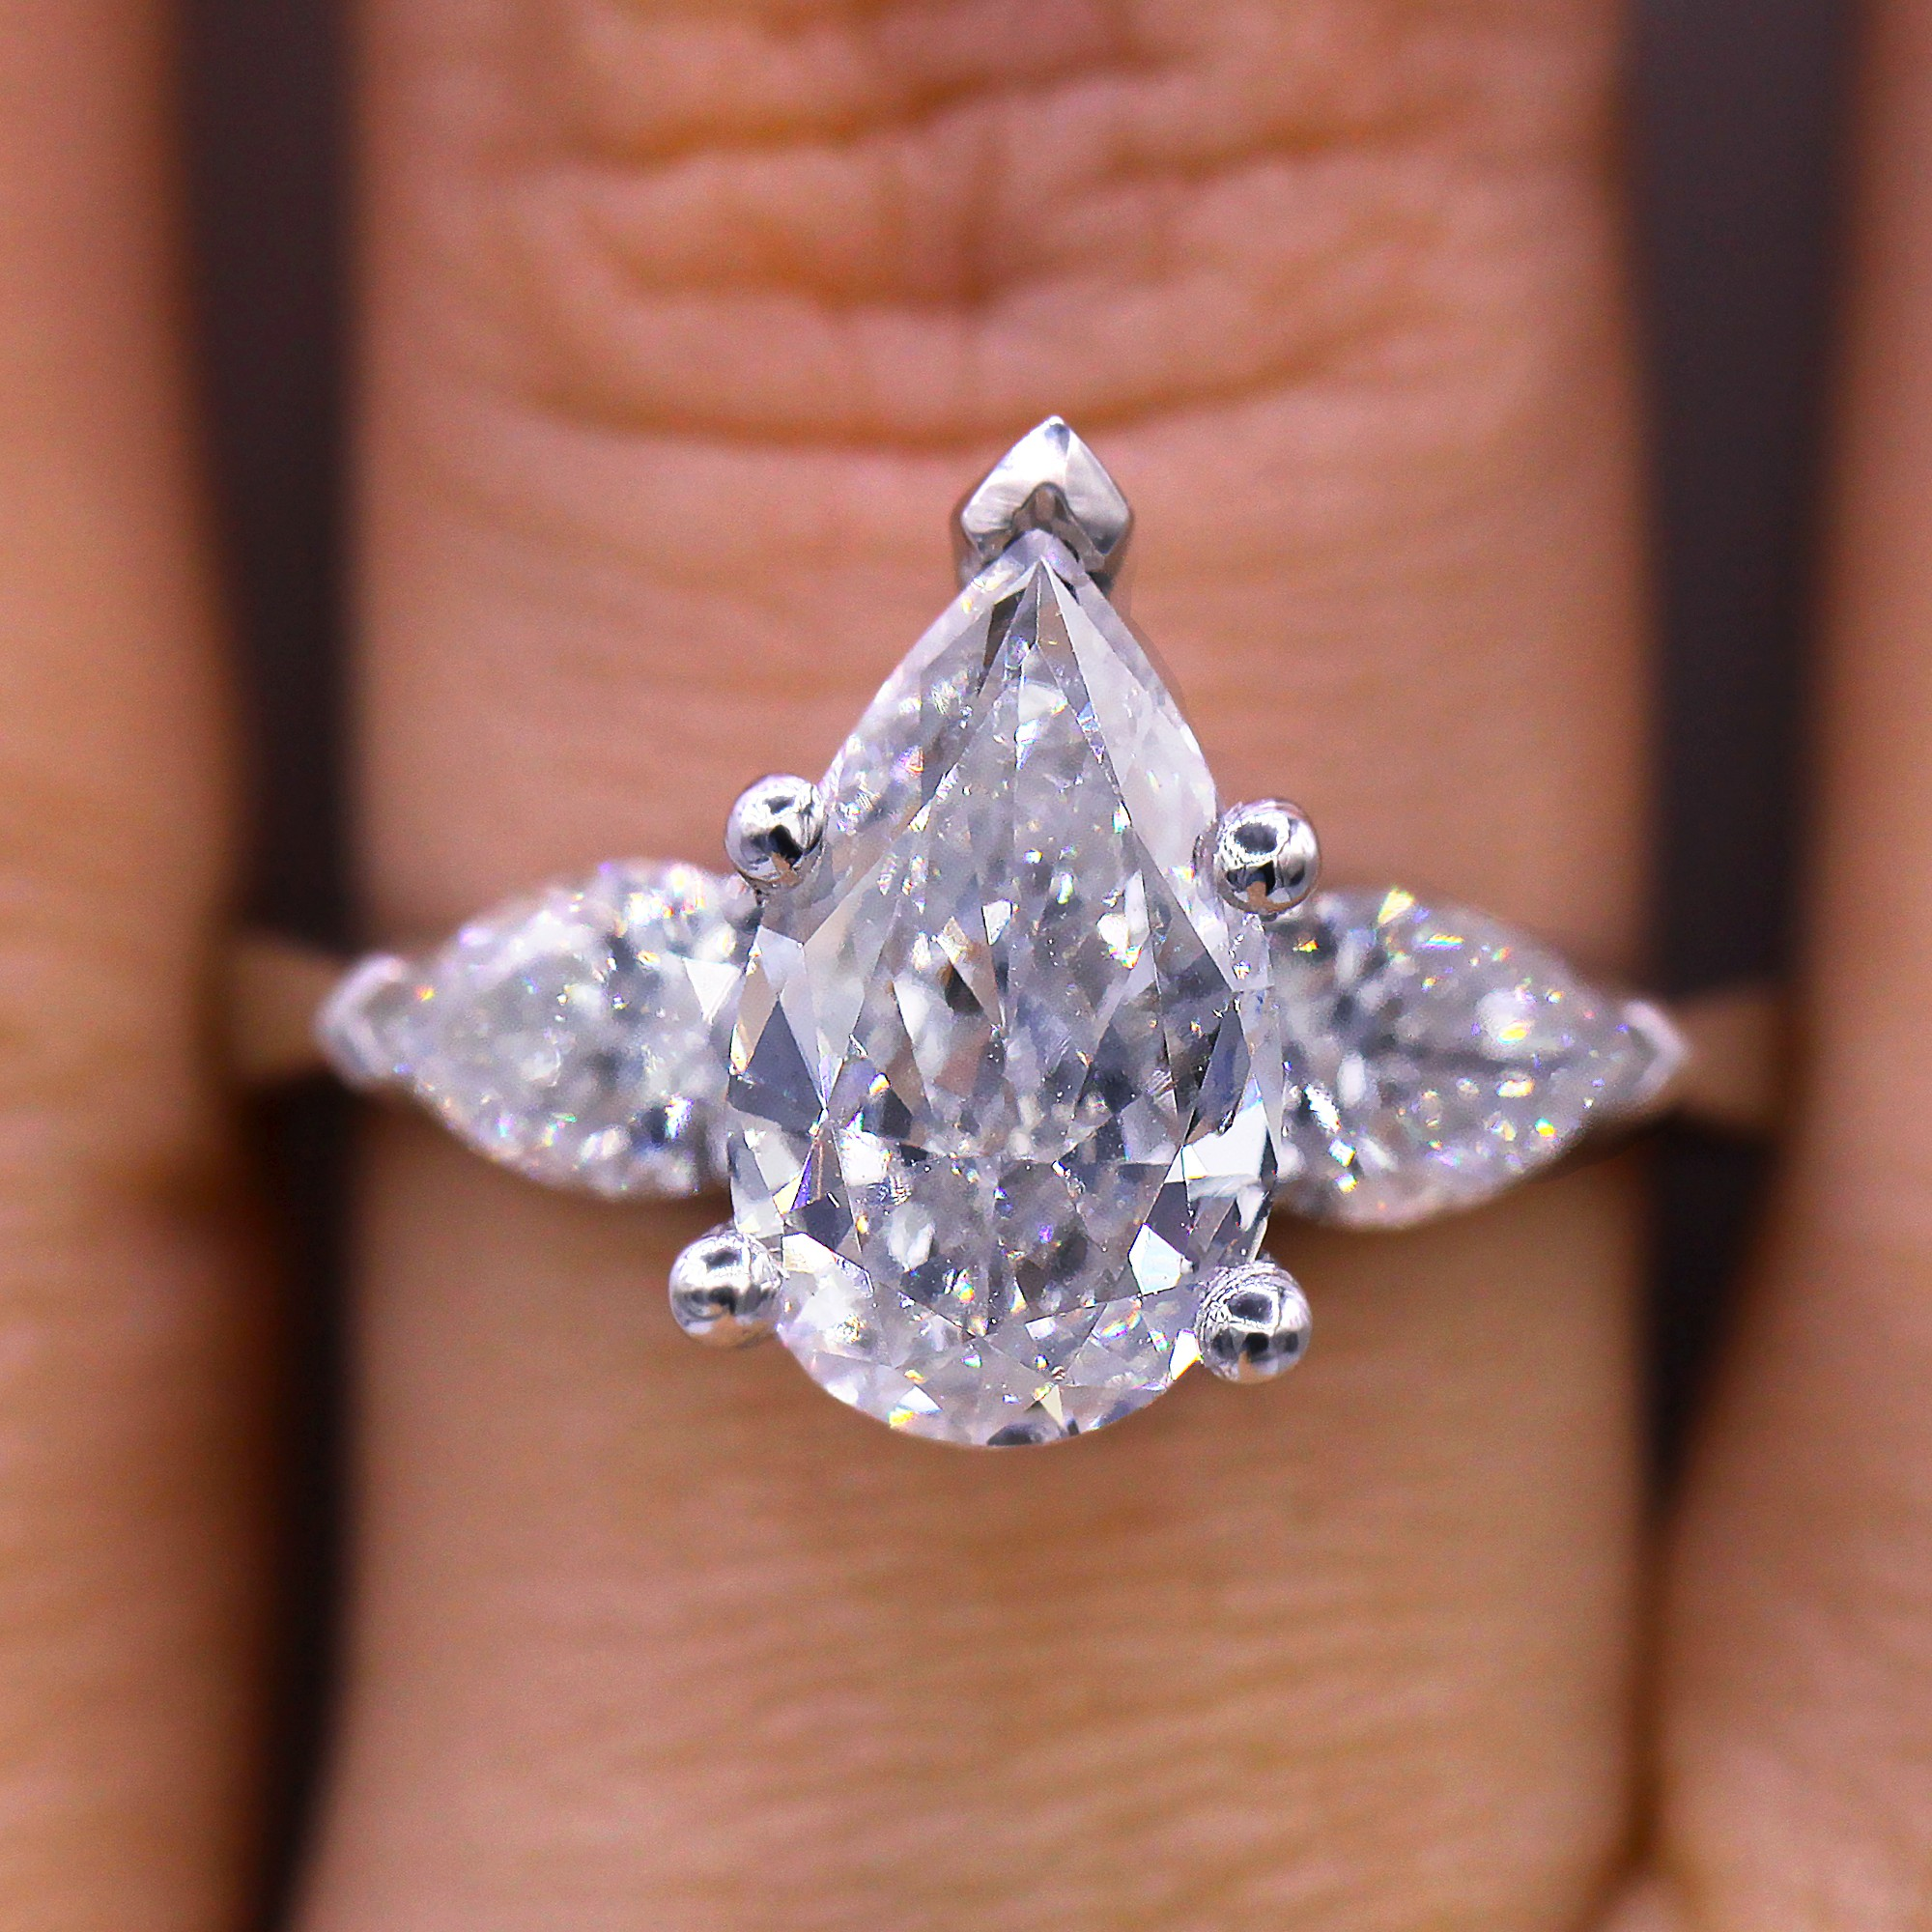 Unique pear shaped diamond ring